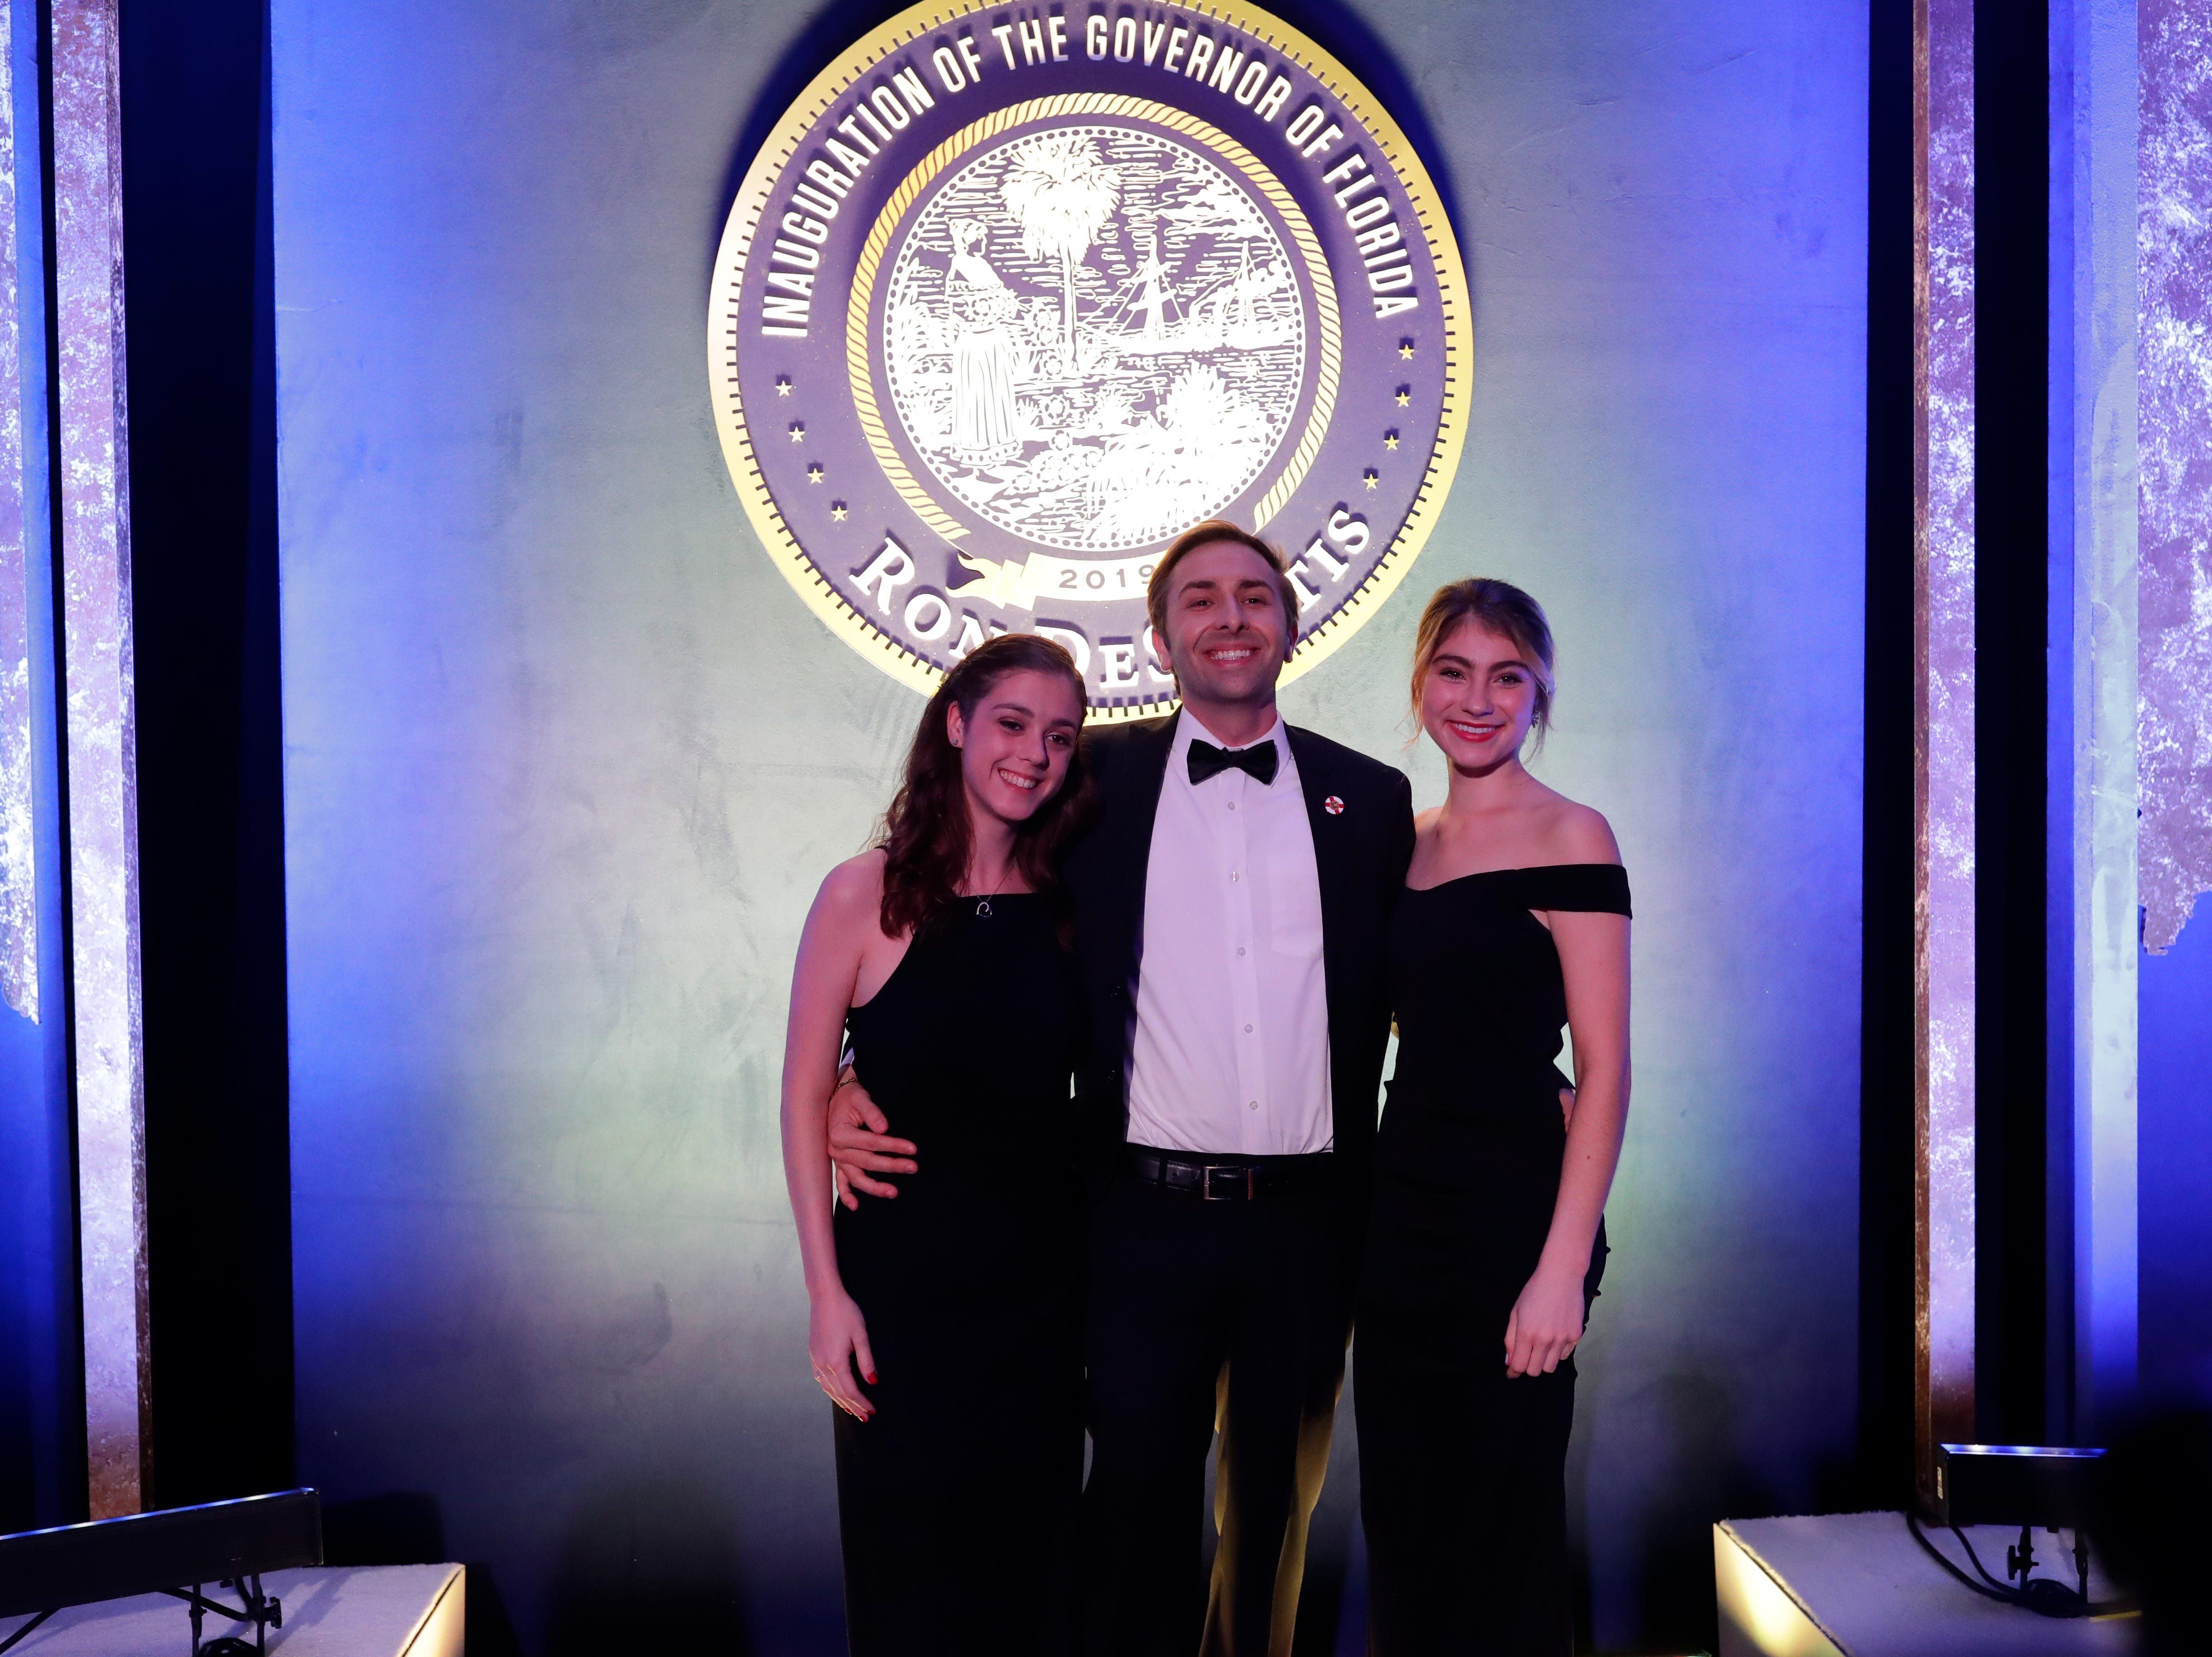 Hundreds of guests from all over Florida attend Florida's 46th Governor's Inaugural Ball at the Tucker Civic Center, Tuesday, Jan. 8, 2019. Guests have their photo taken in front of the DeSantis inauguration Florida state seal.